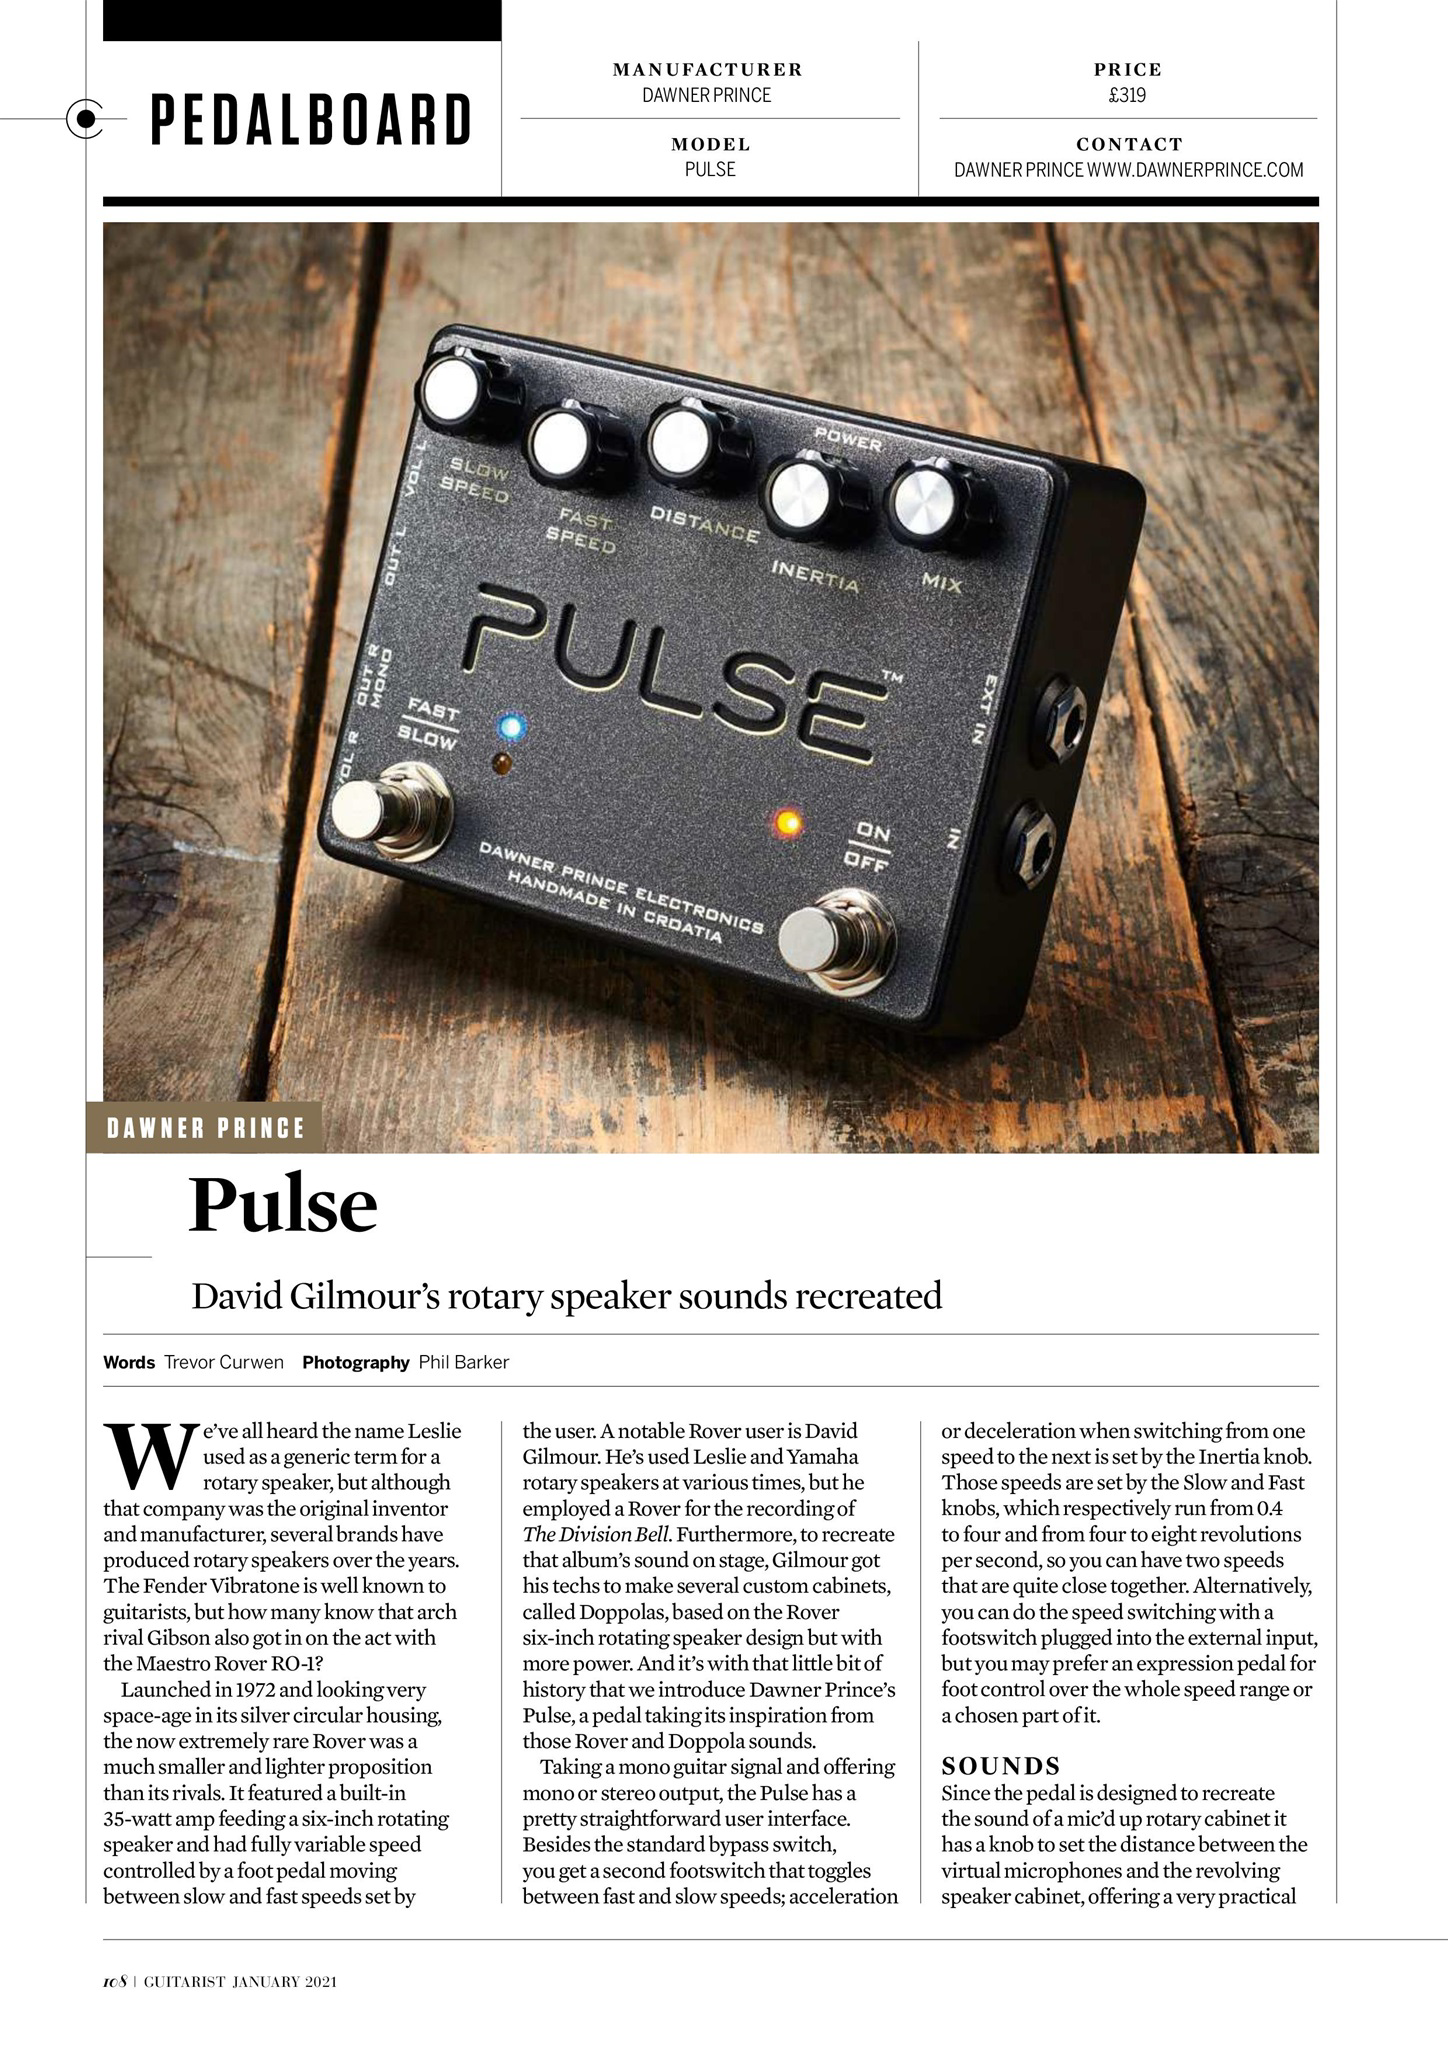 Guitarist Magazine Pulse review 1